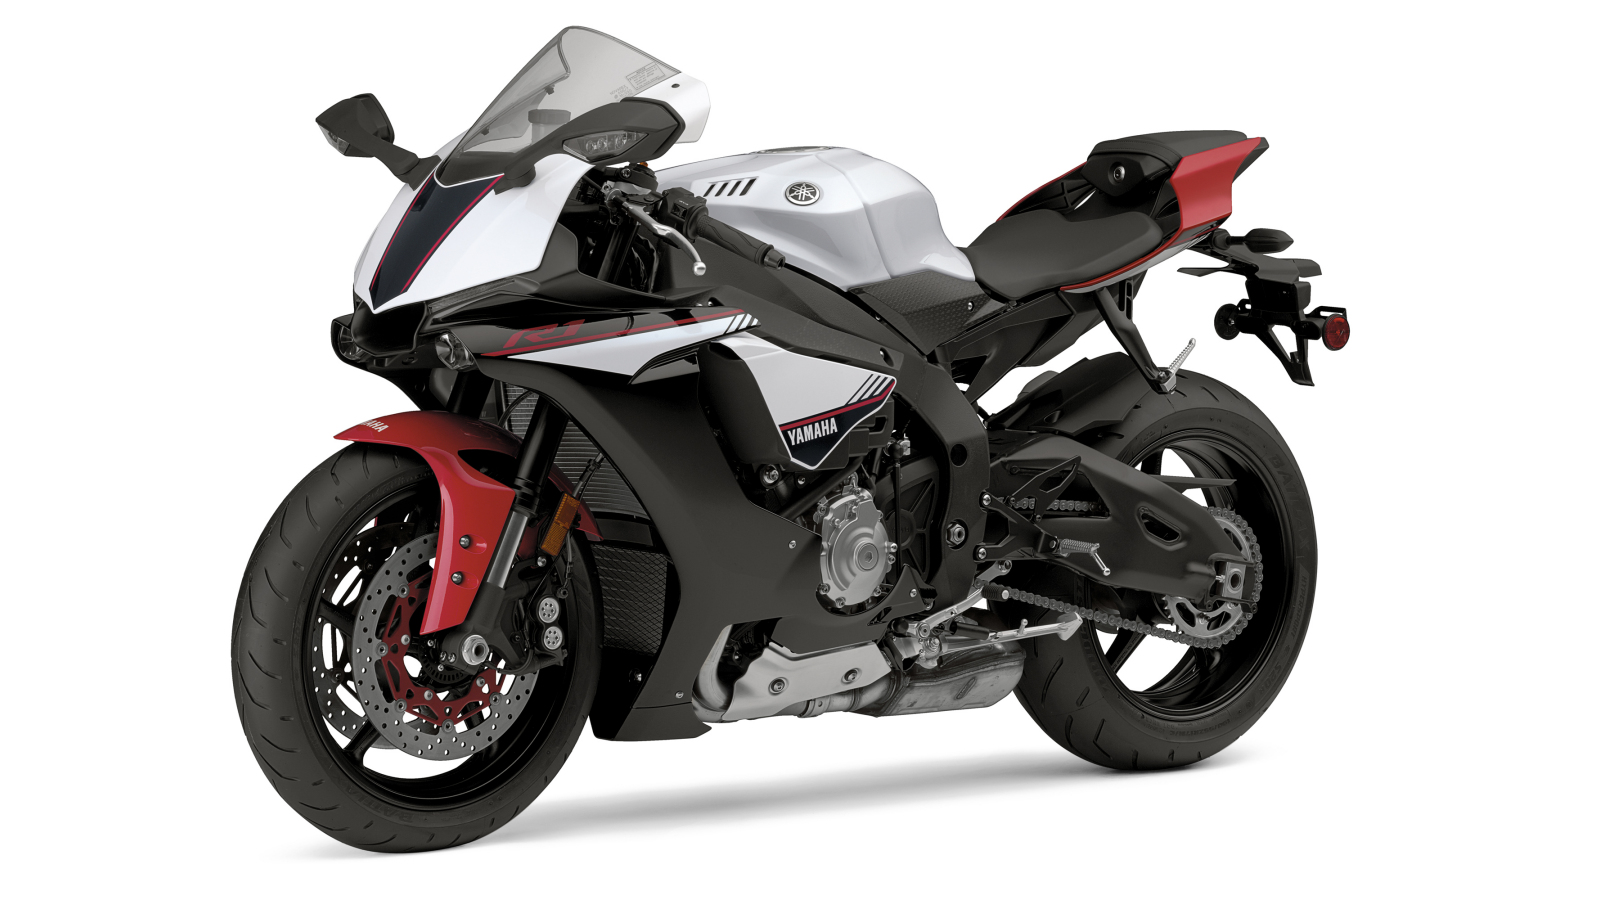 2017 Yamaha Yzf R1s Motorcycle Uae S Prices Specs